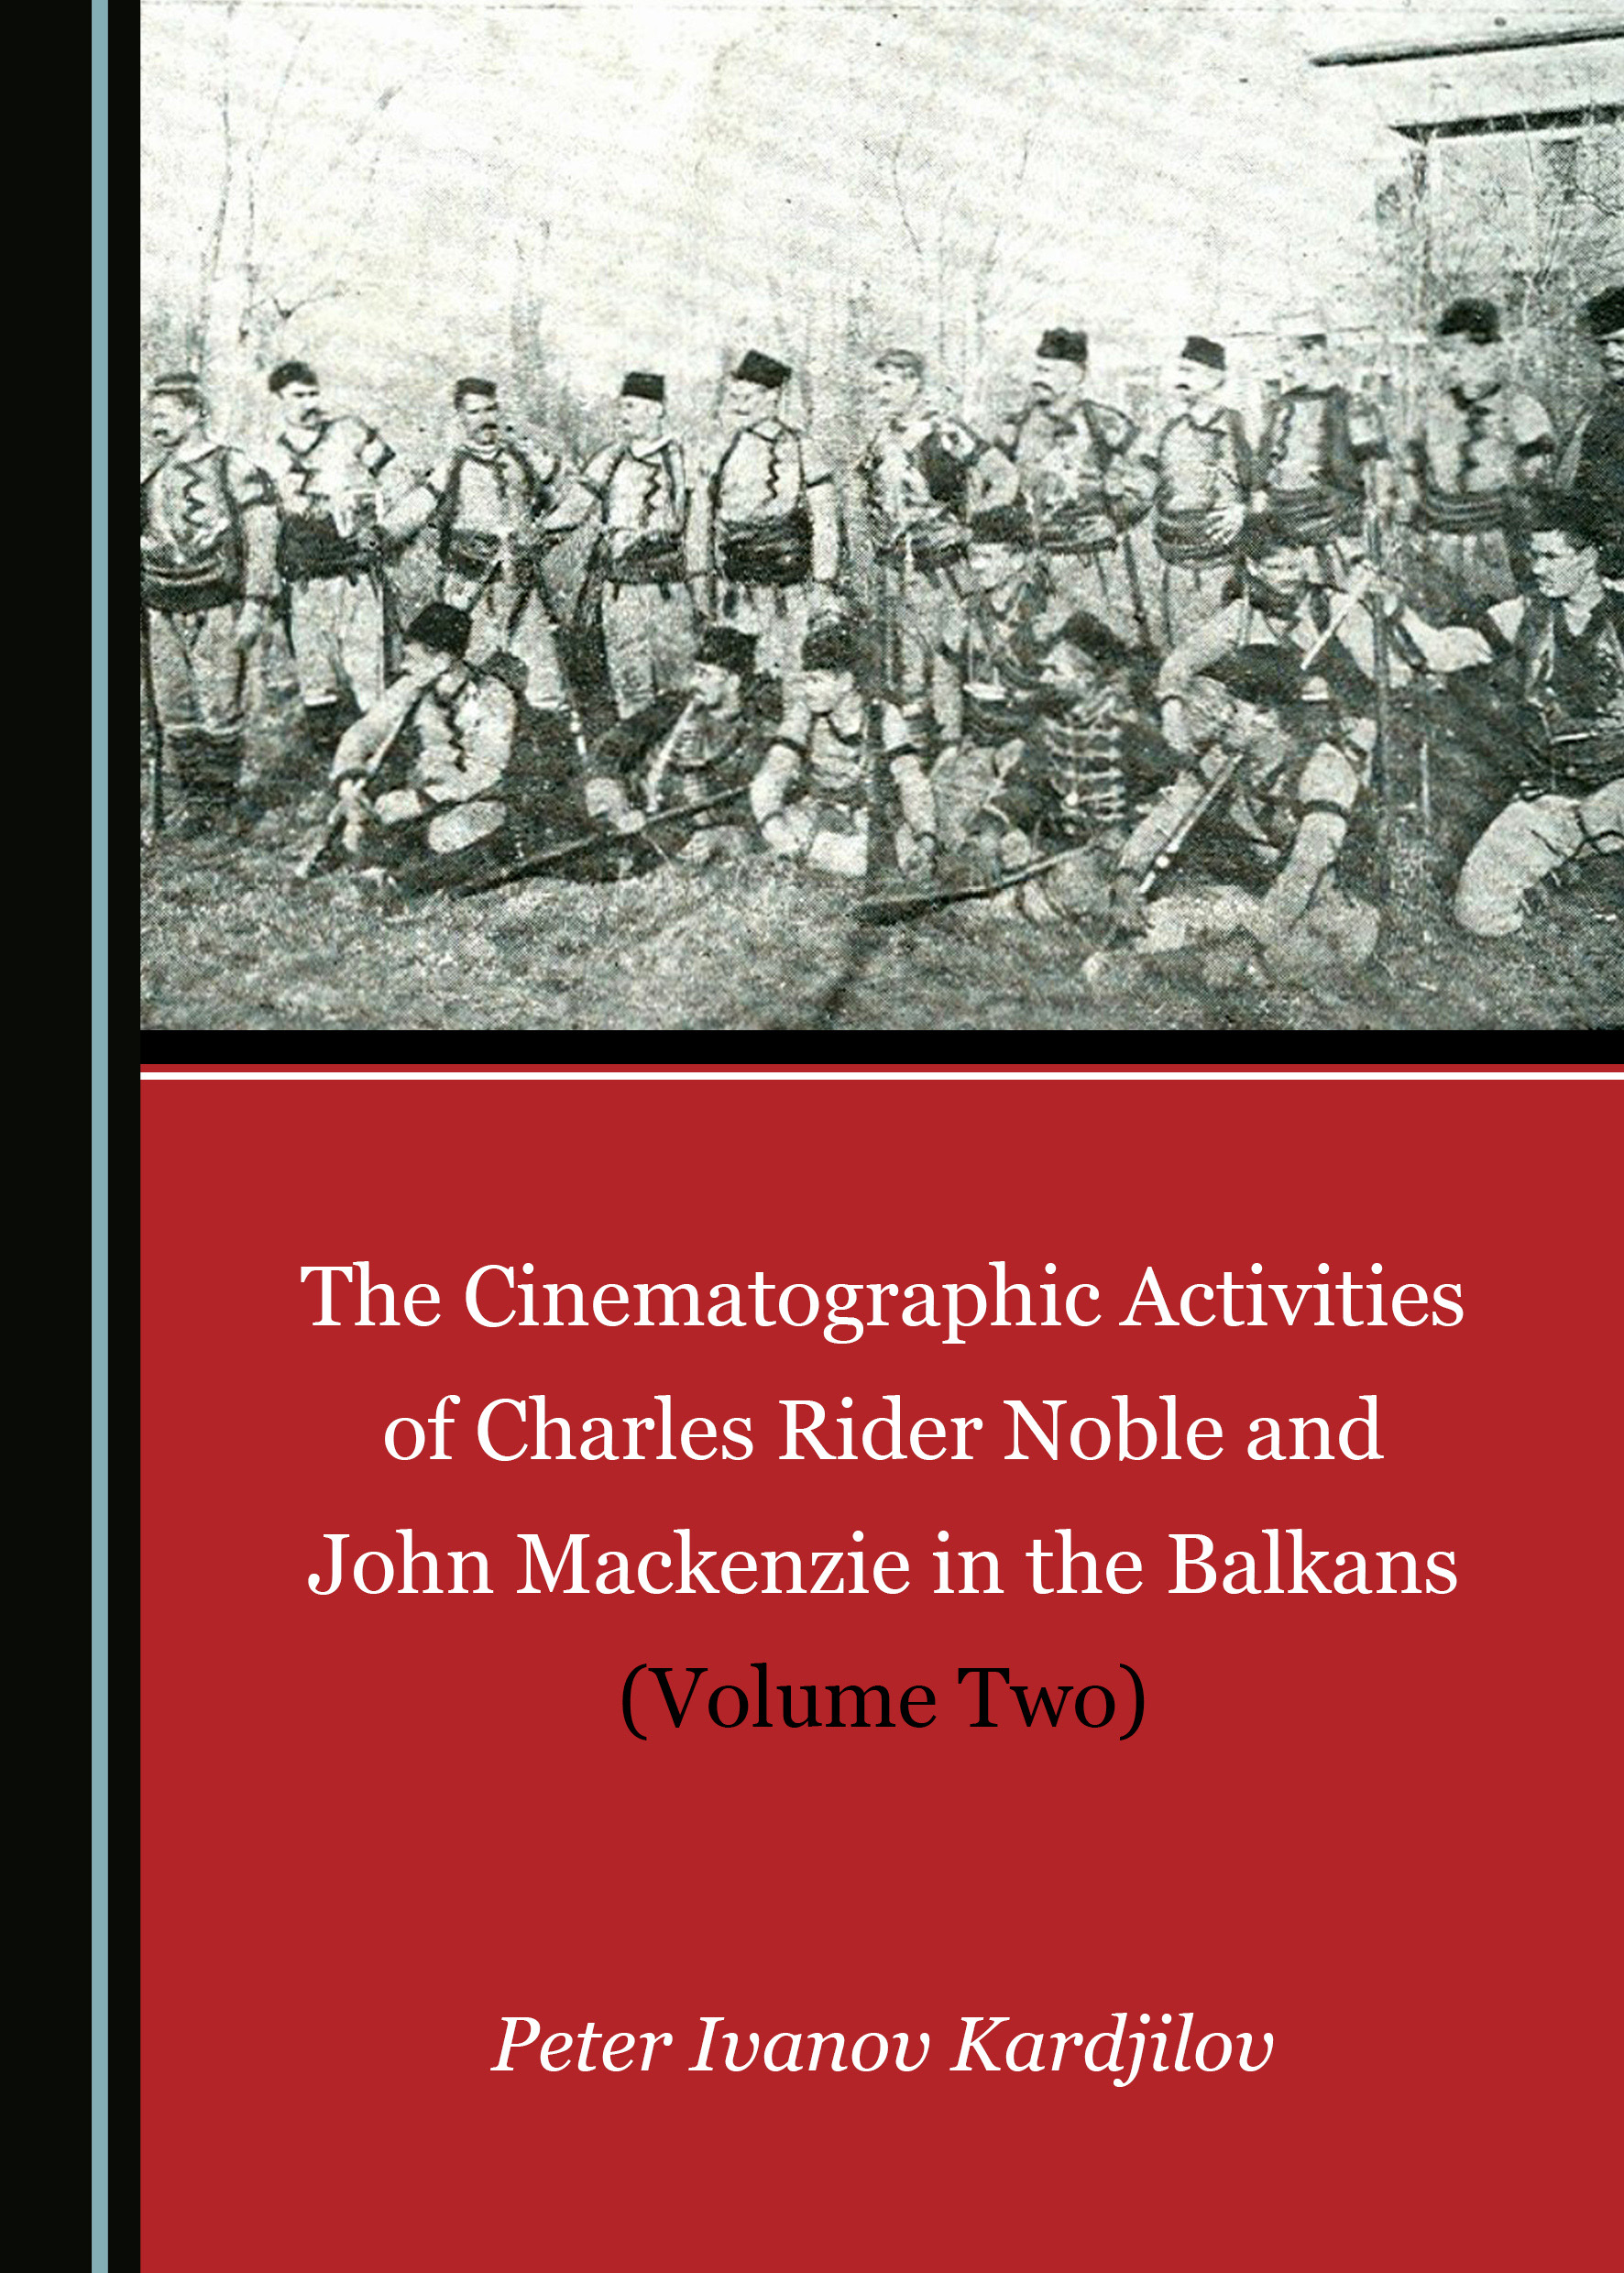 The Cinematographic Activities of Charles Rider Noble and John Mackenzie in the Balkans (Volume Two)